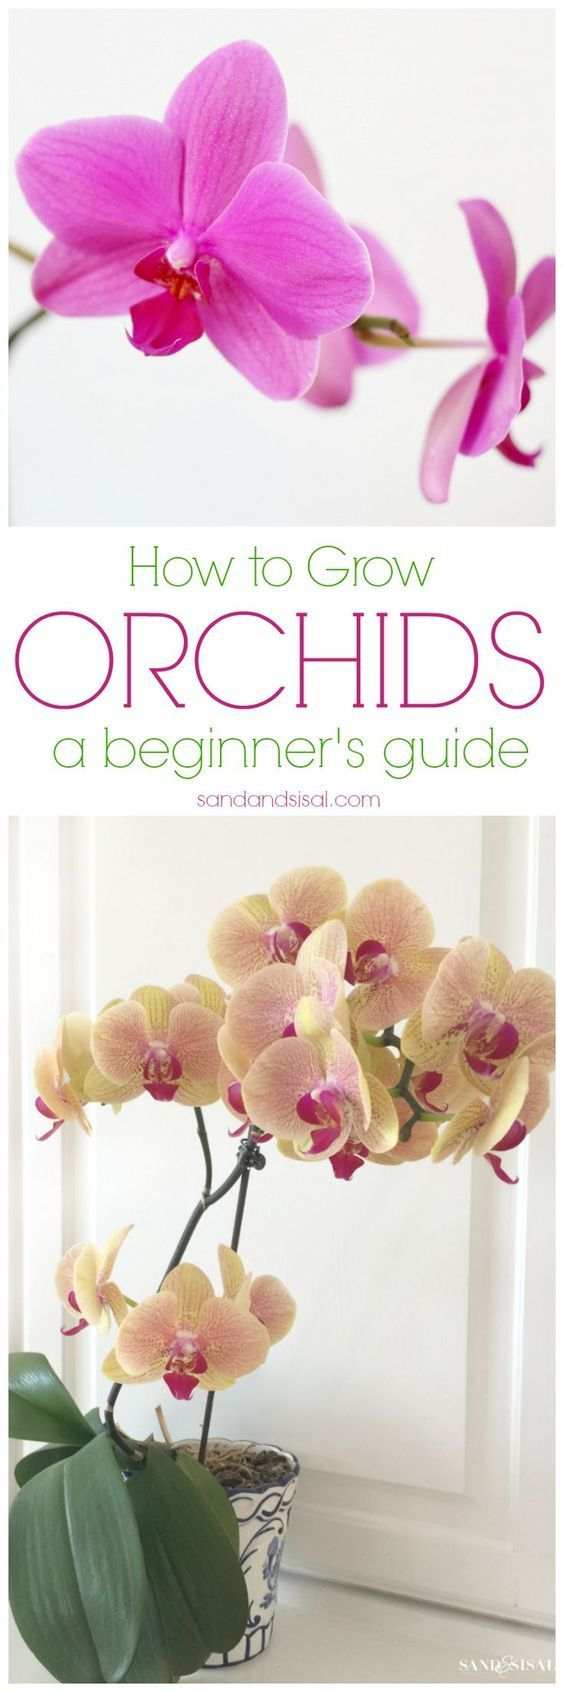 1000 Images About Orchids On Pinterest